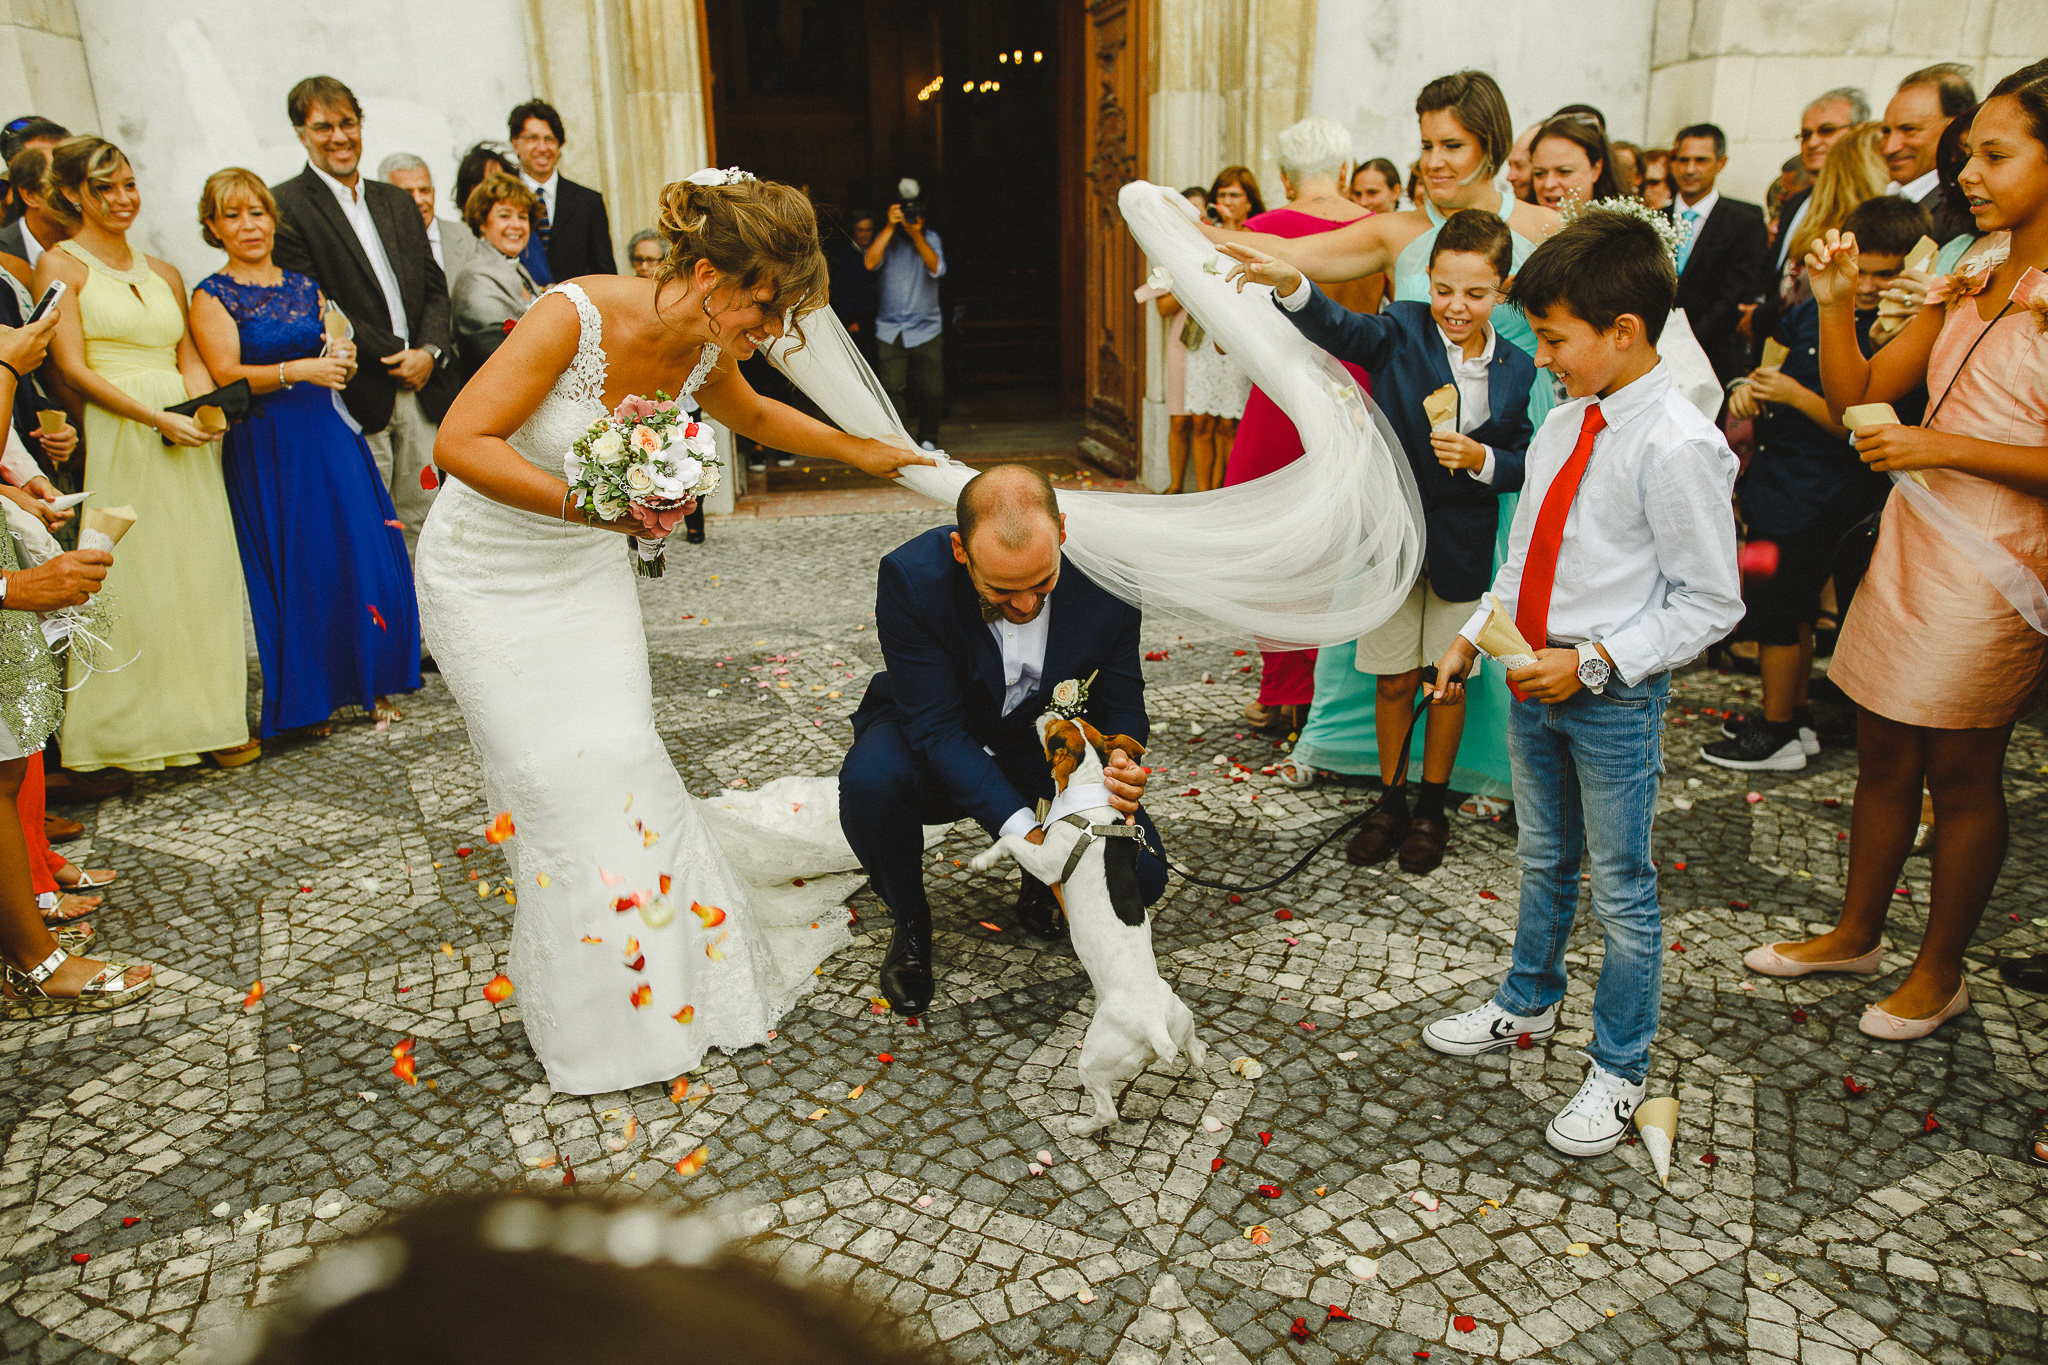 Bride and groom petting their dog after leaving church